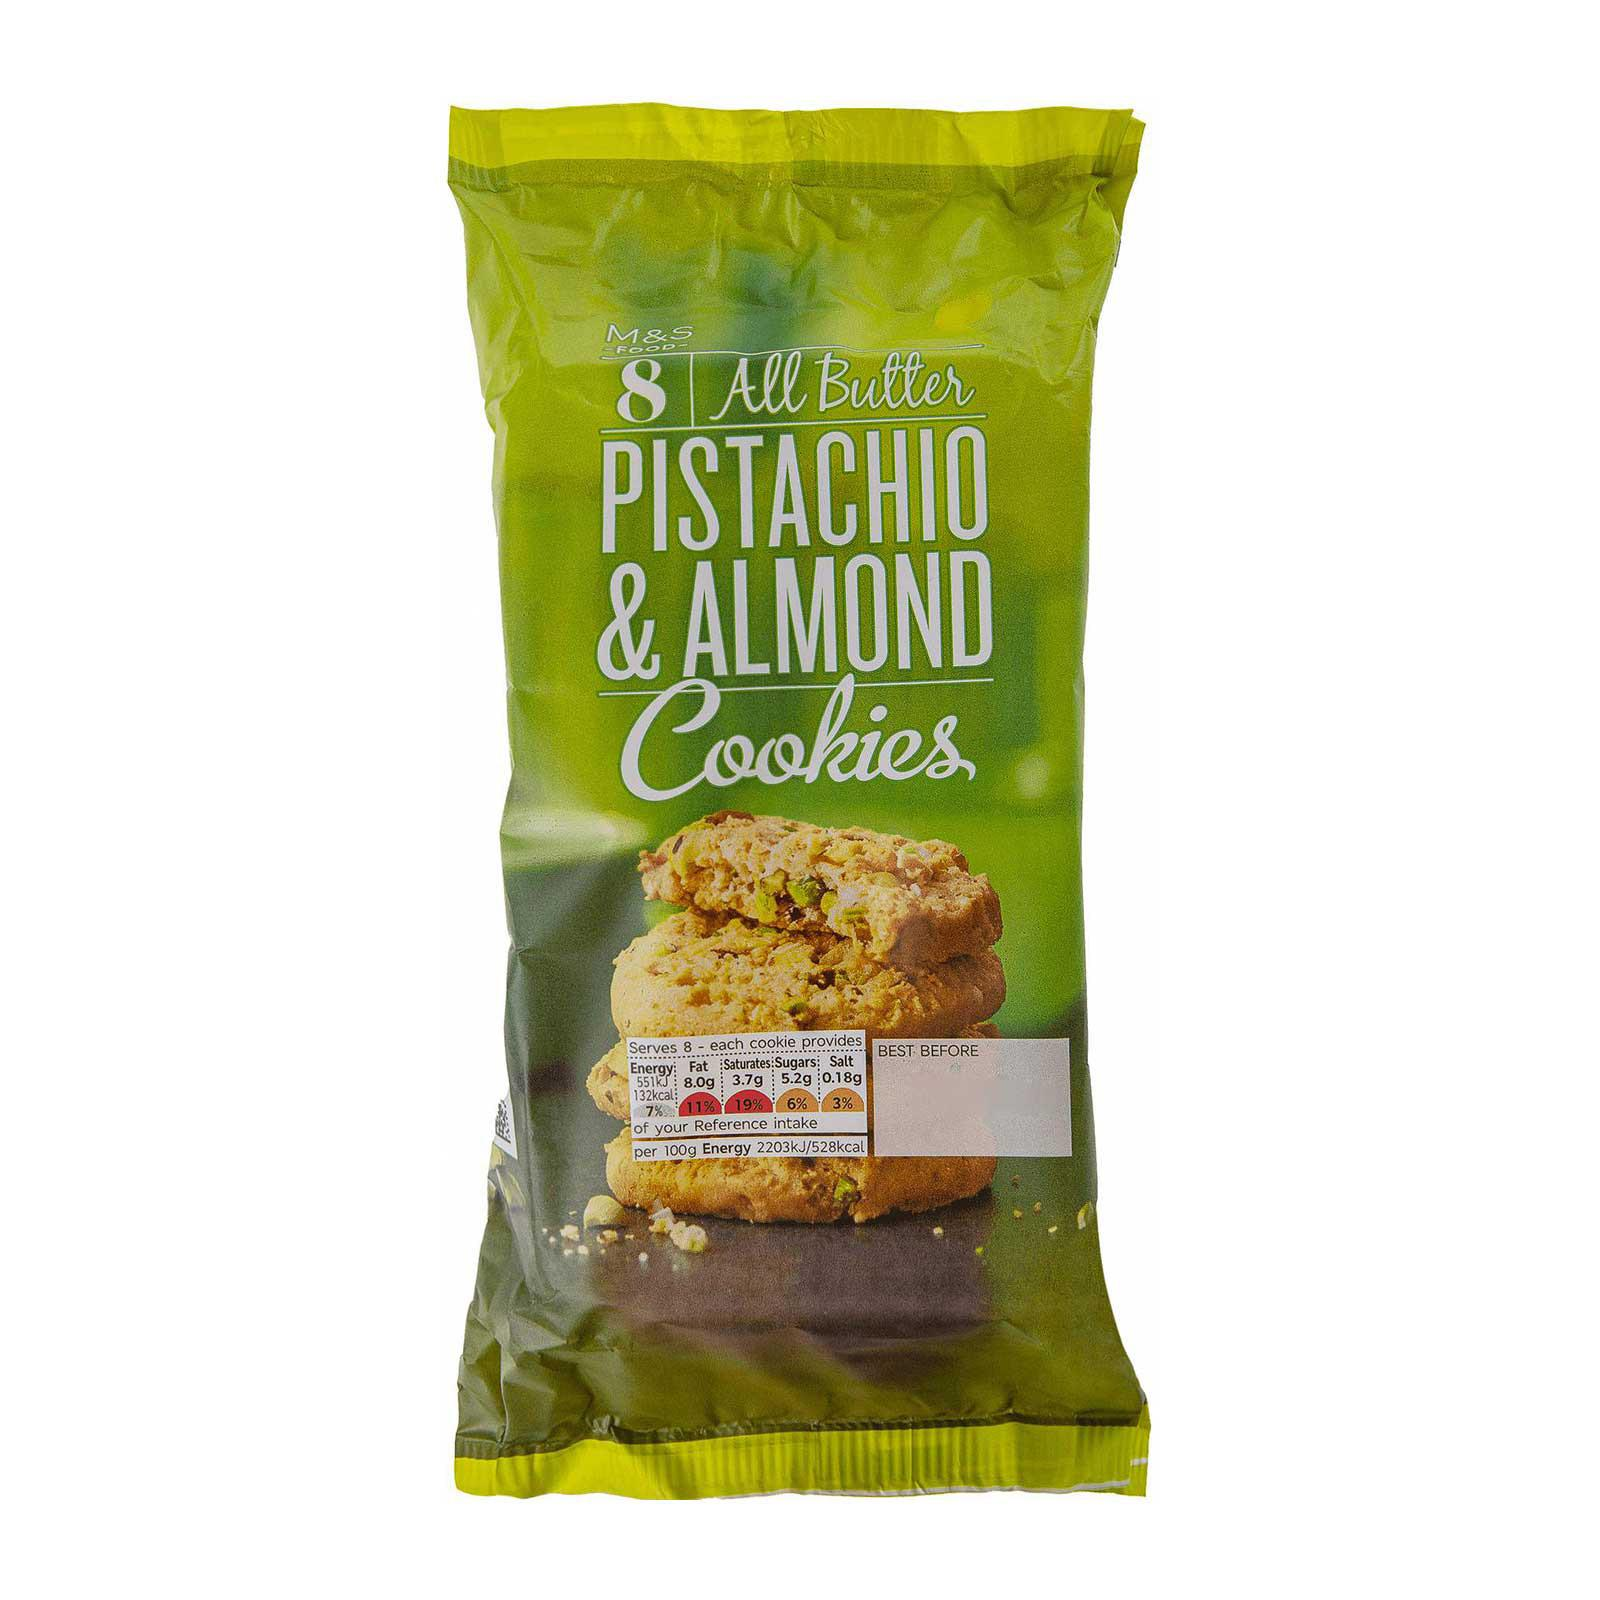 Marks & Spencer All Butter Pistachio and Almond Cookies